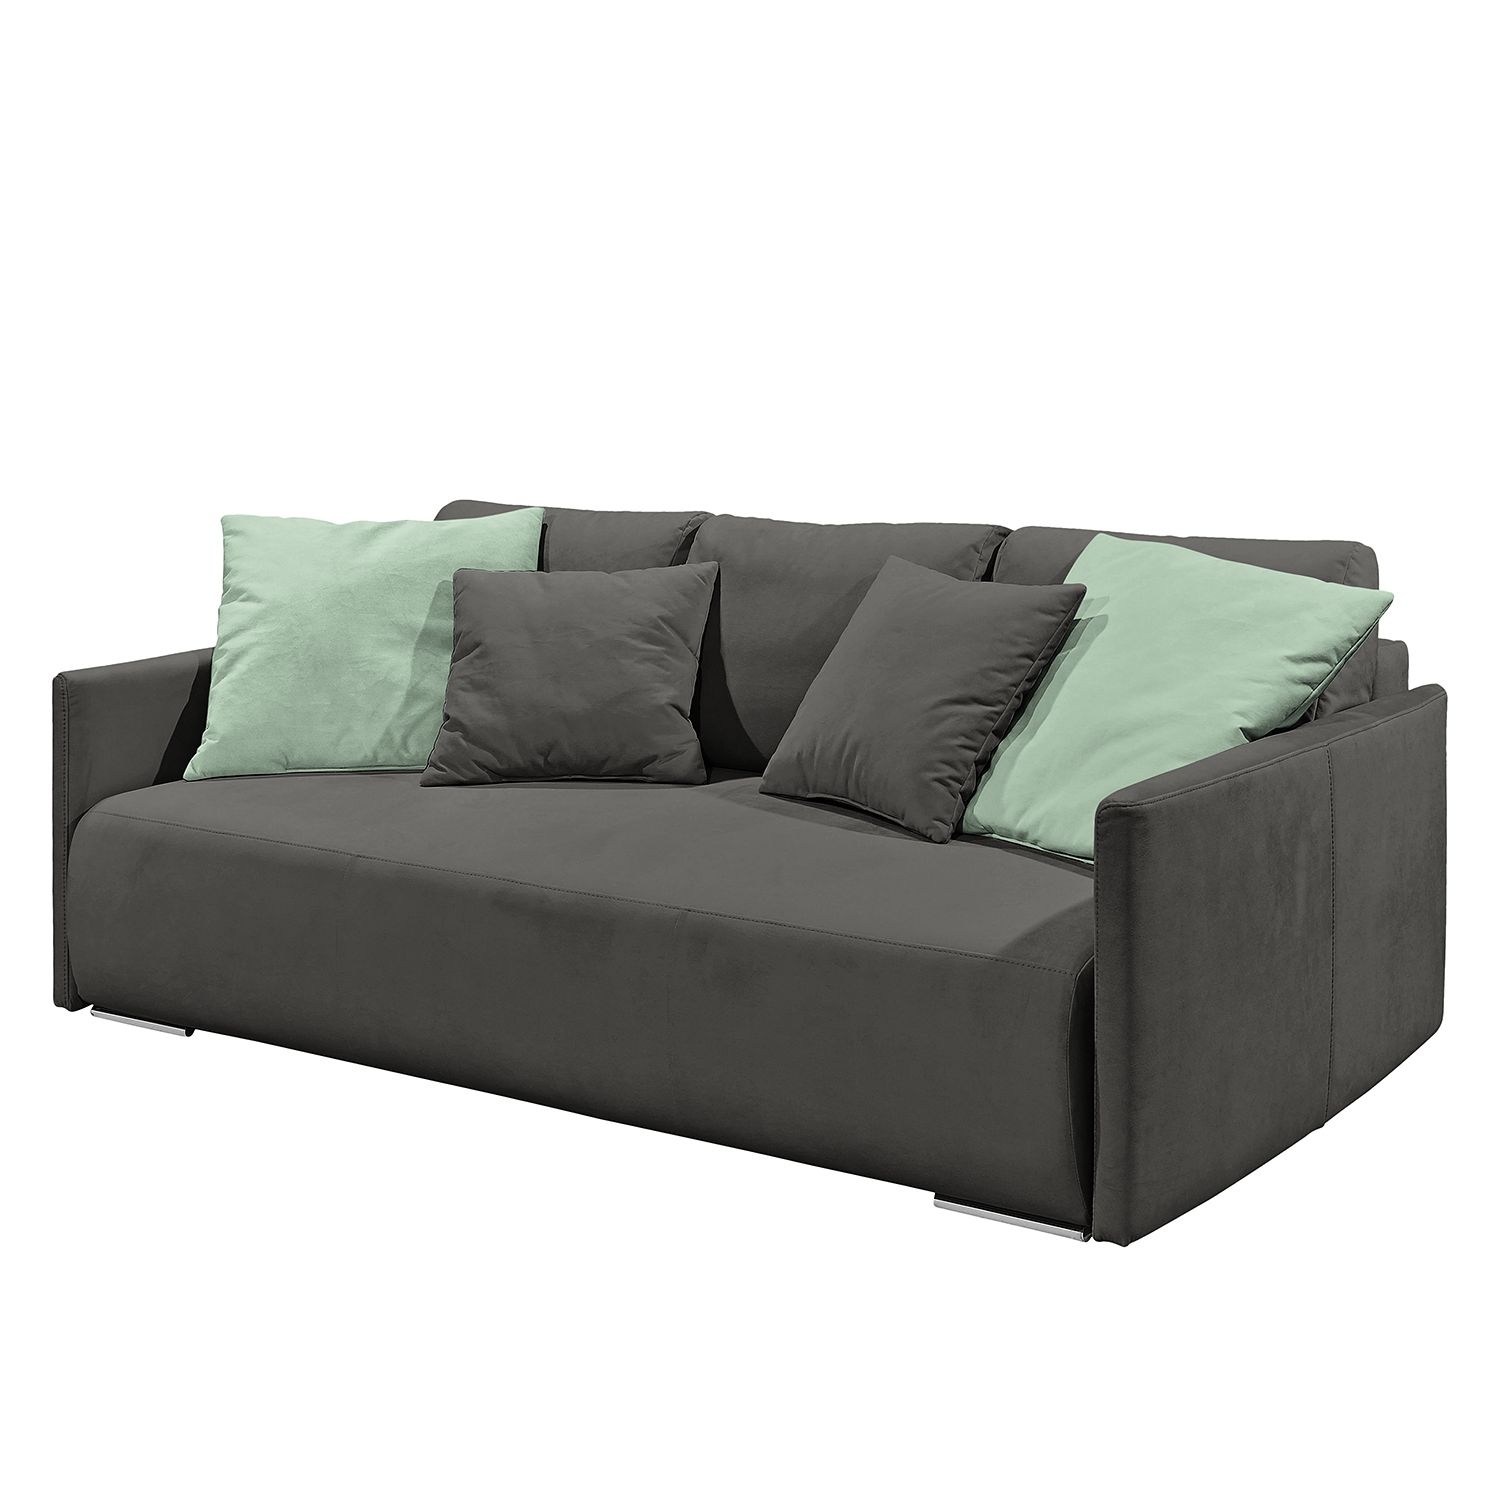 Canapé convertible Espas - Tissu - Anthracite / Vert menthe, mooved